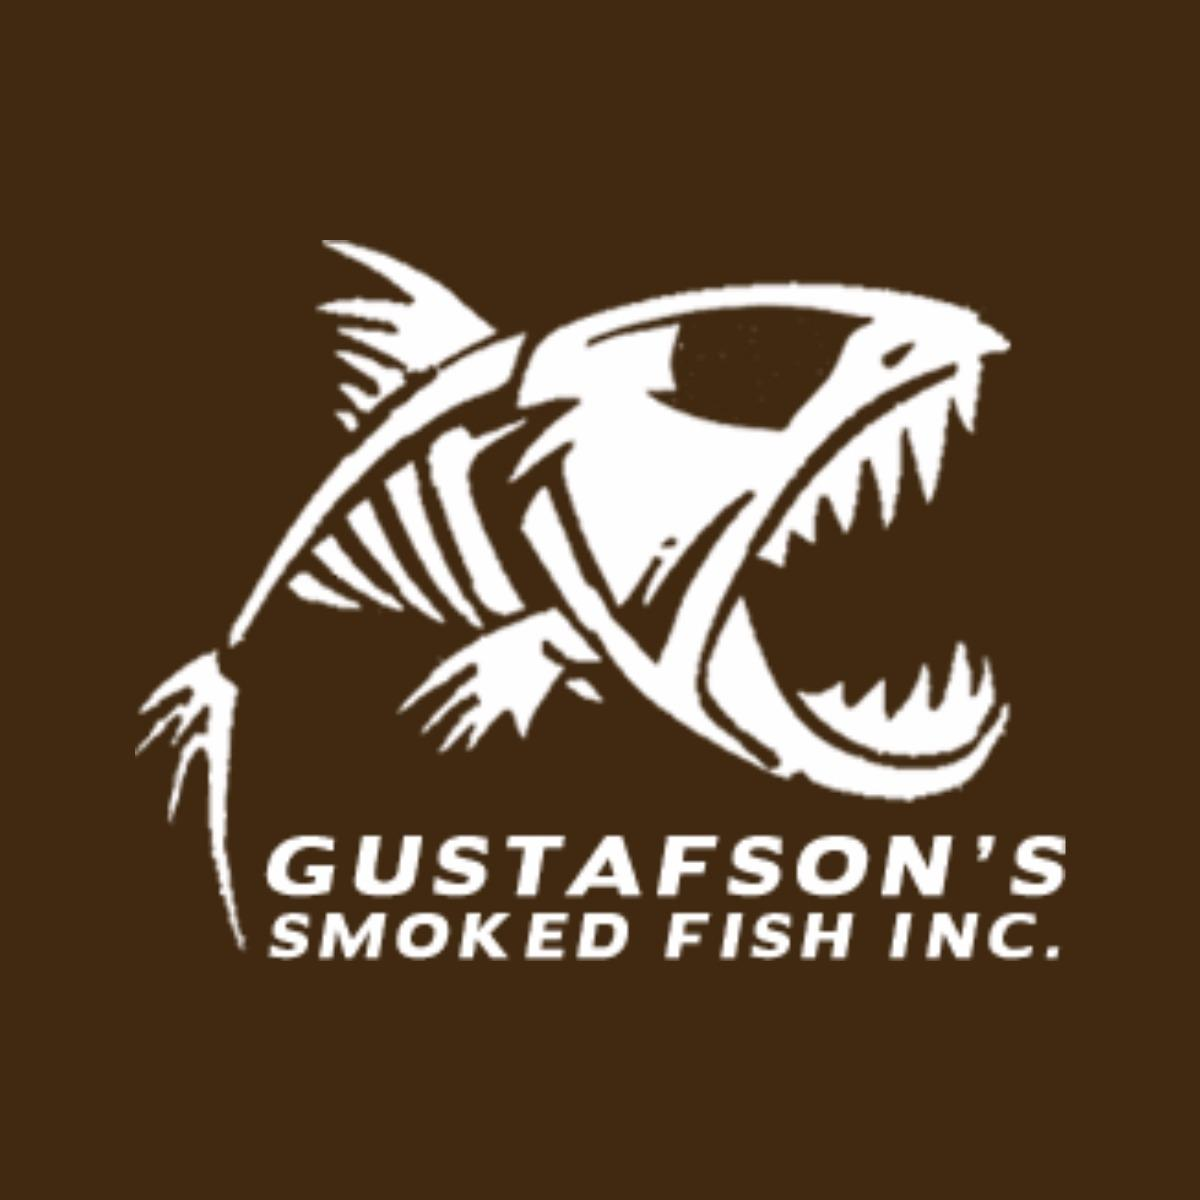 Gustafson's Smoked Fish Inc.